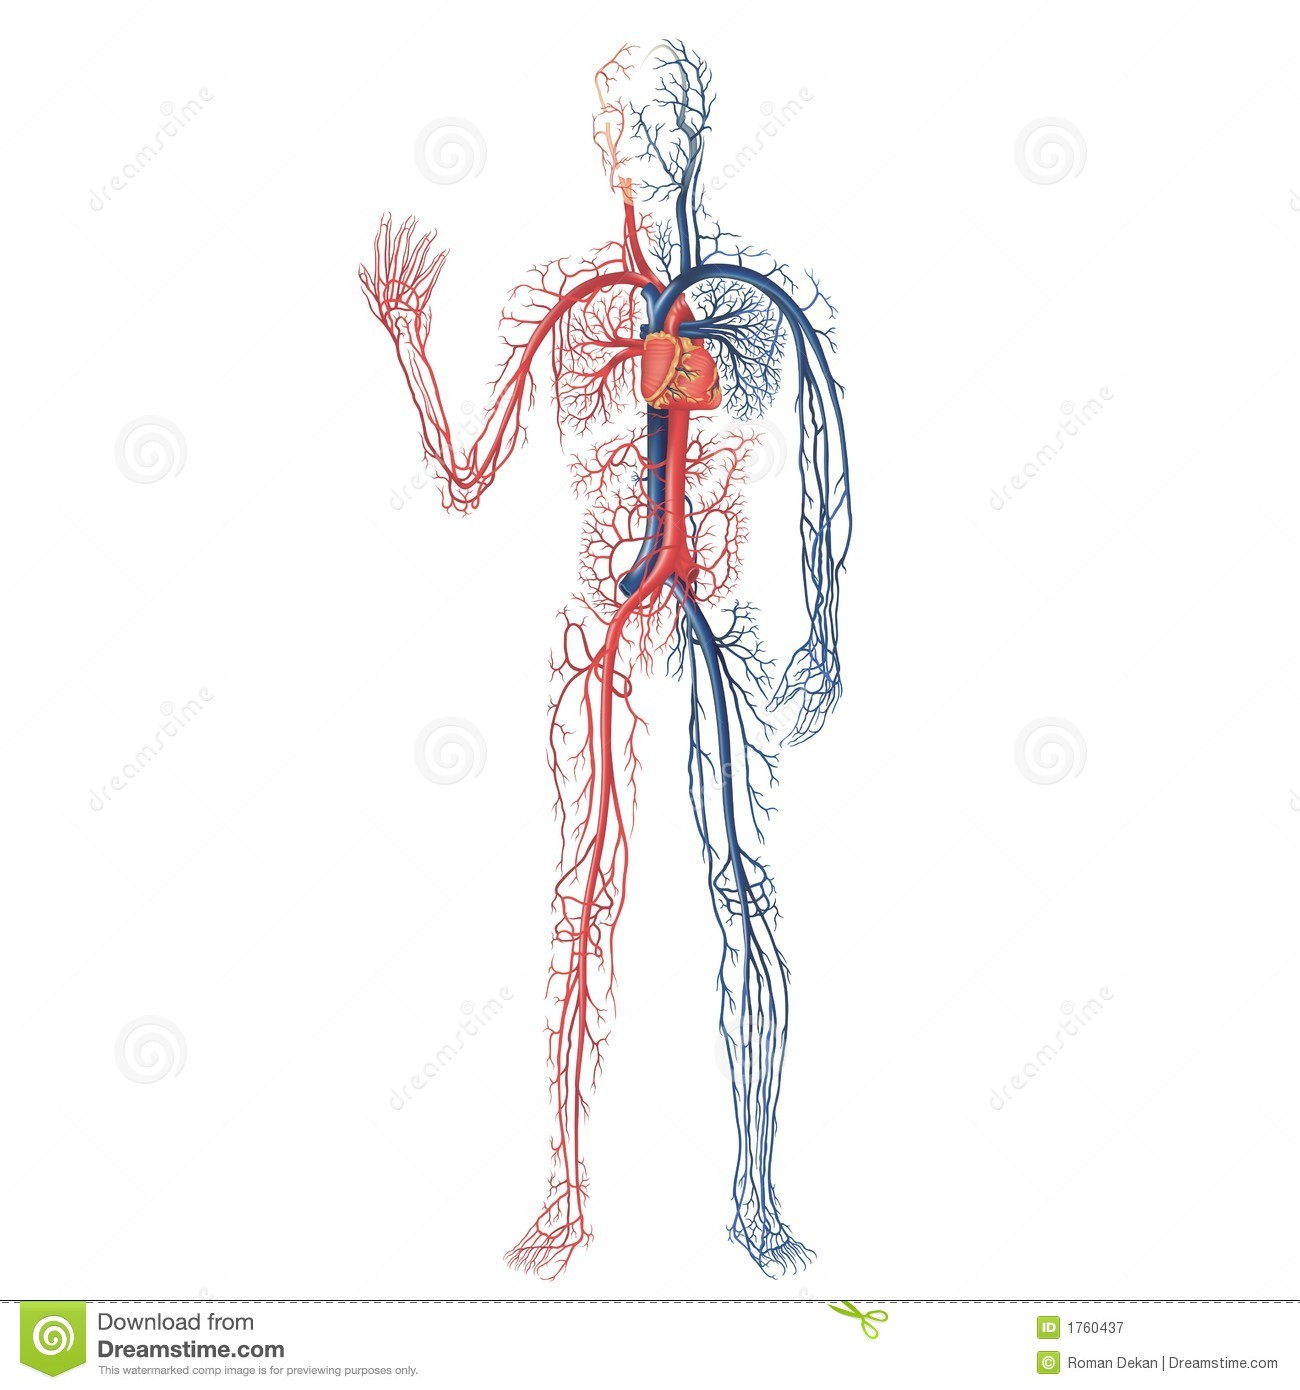 Worksheet Human Anatomy Vascular